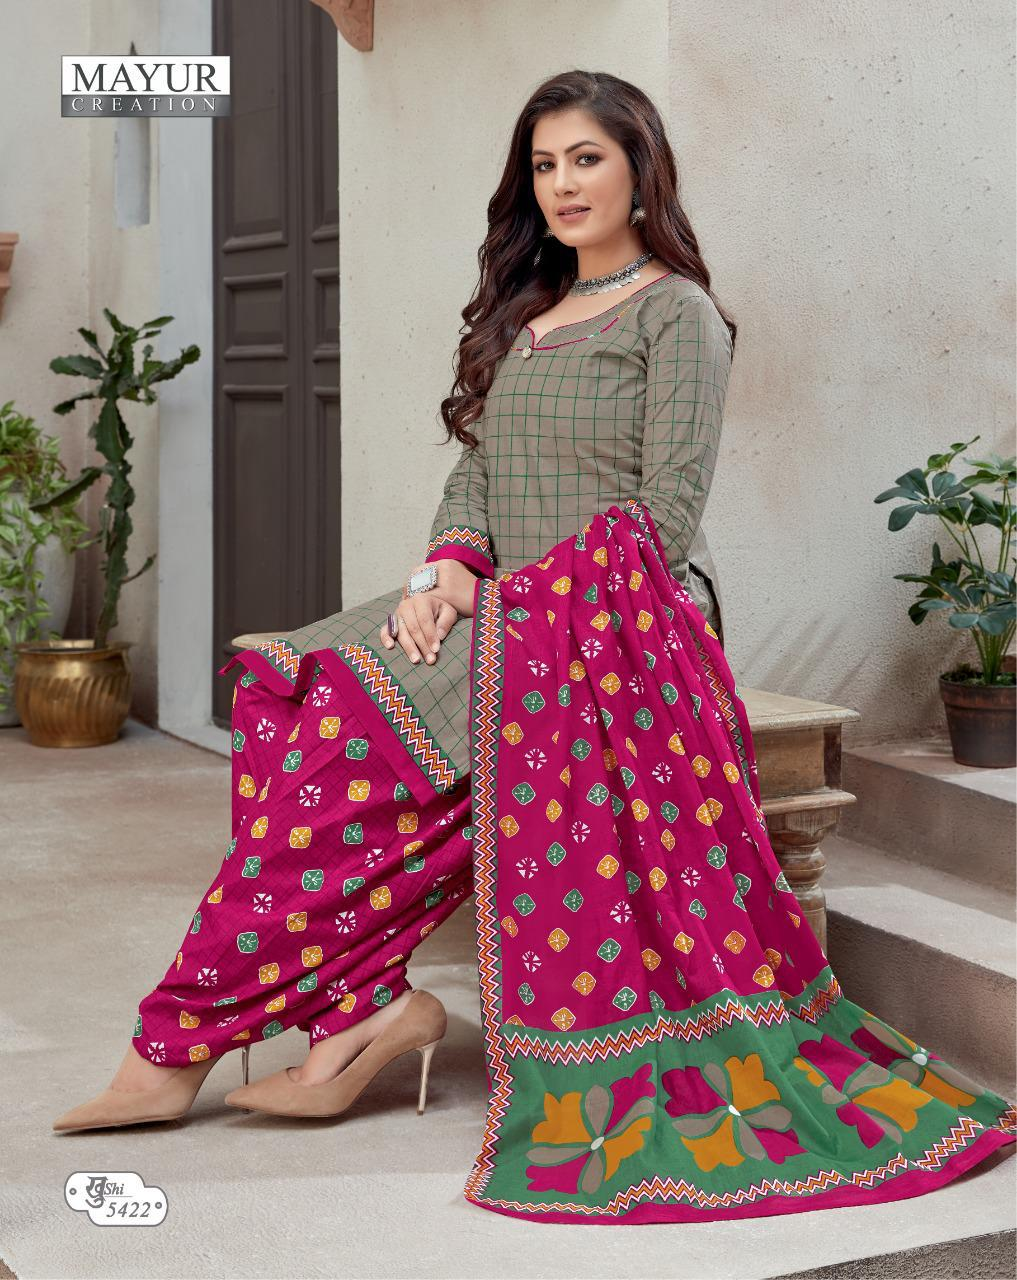 Mayur Creation Khushi Vol 54 Designer Cotton Printed Daily Wear Suits Wholesale